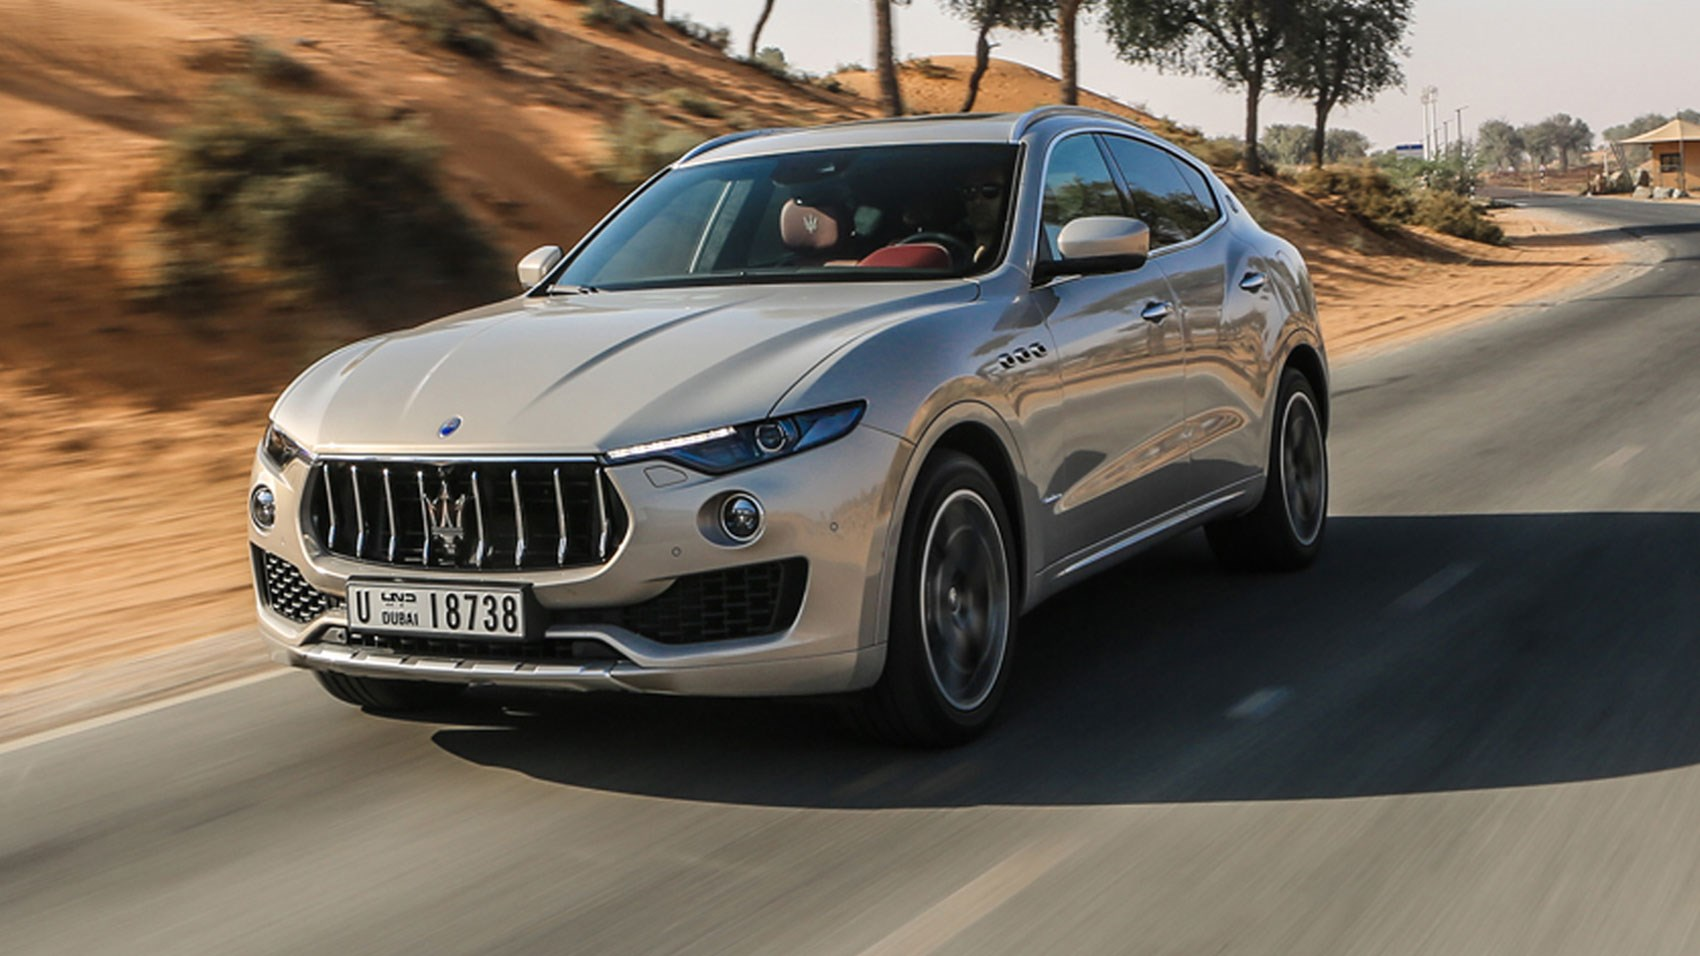 maserati levante 3 0 v6 s 2017 review car magazine. Black Bedroom Furniture Sets. Home Design Ideas